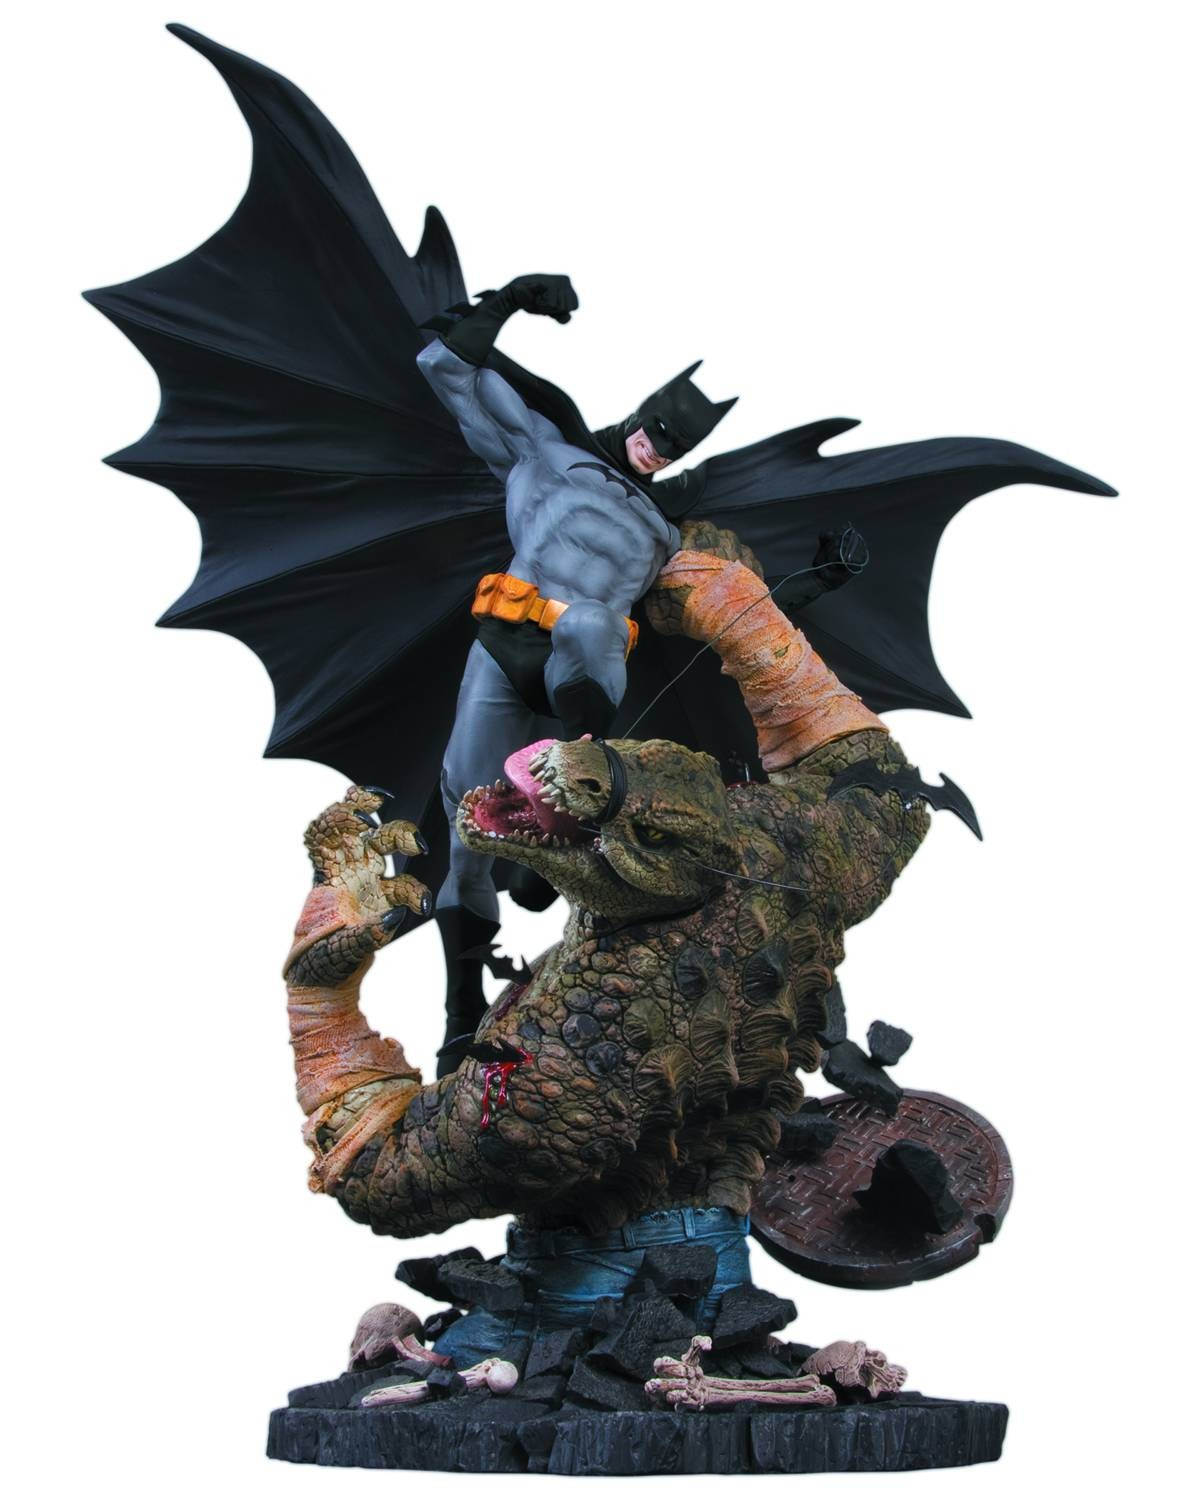 BATMAN VS KILLER CROC STATUE 2ND EDITION